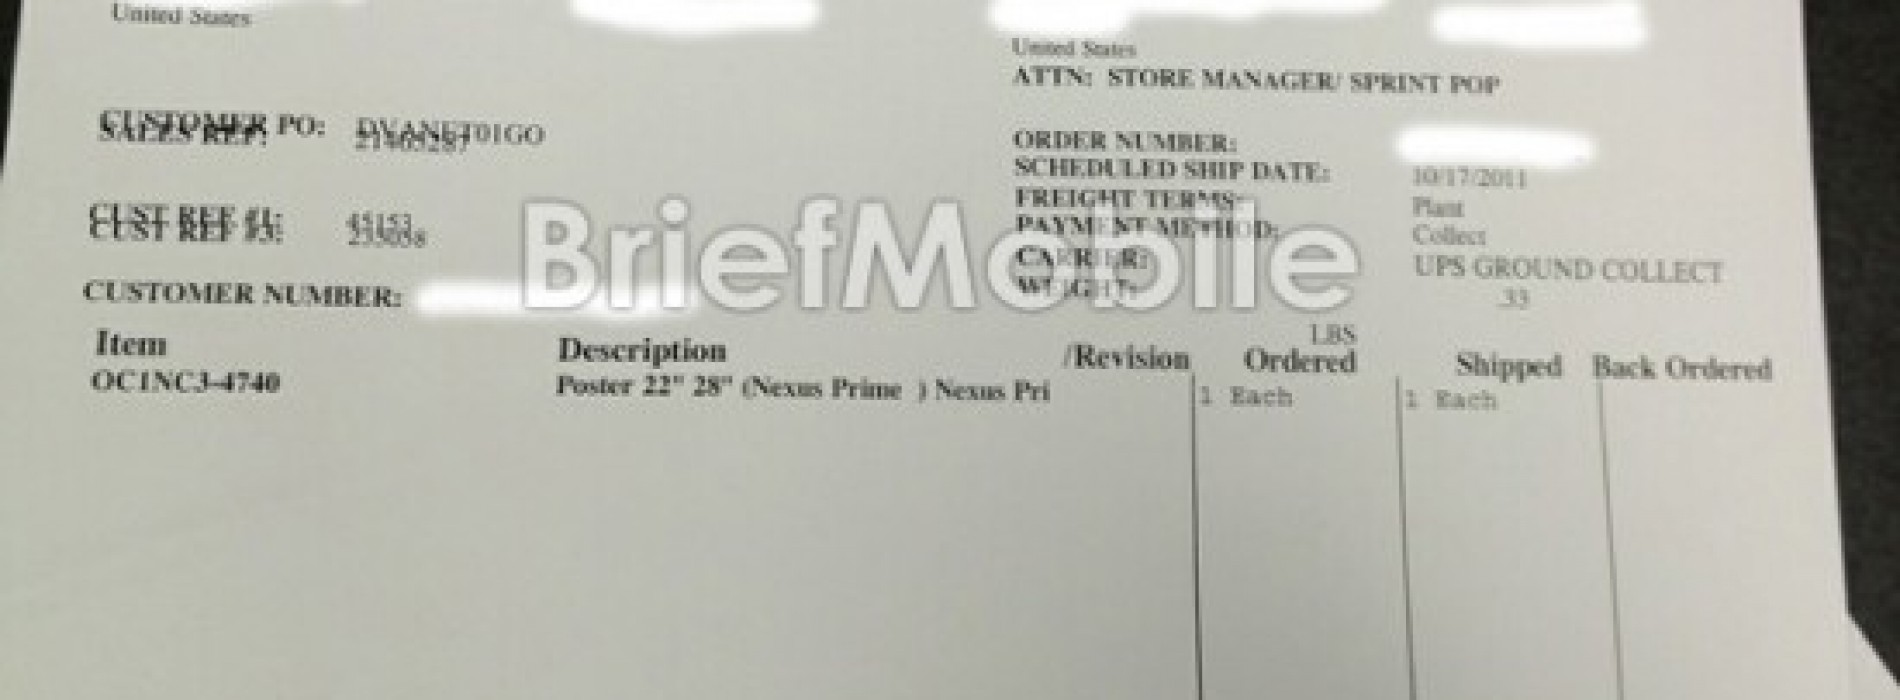 Galaxy Nexus Spotted in Internal Sprint Document?